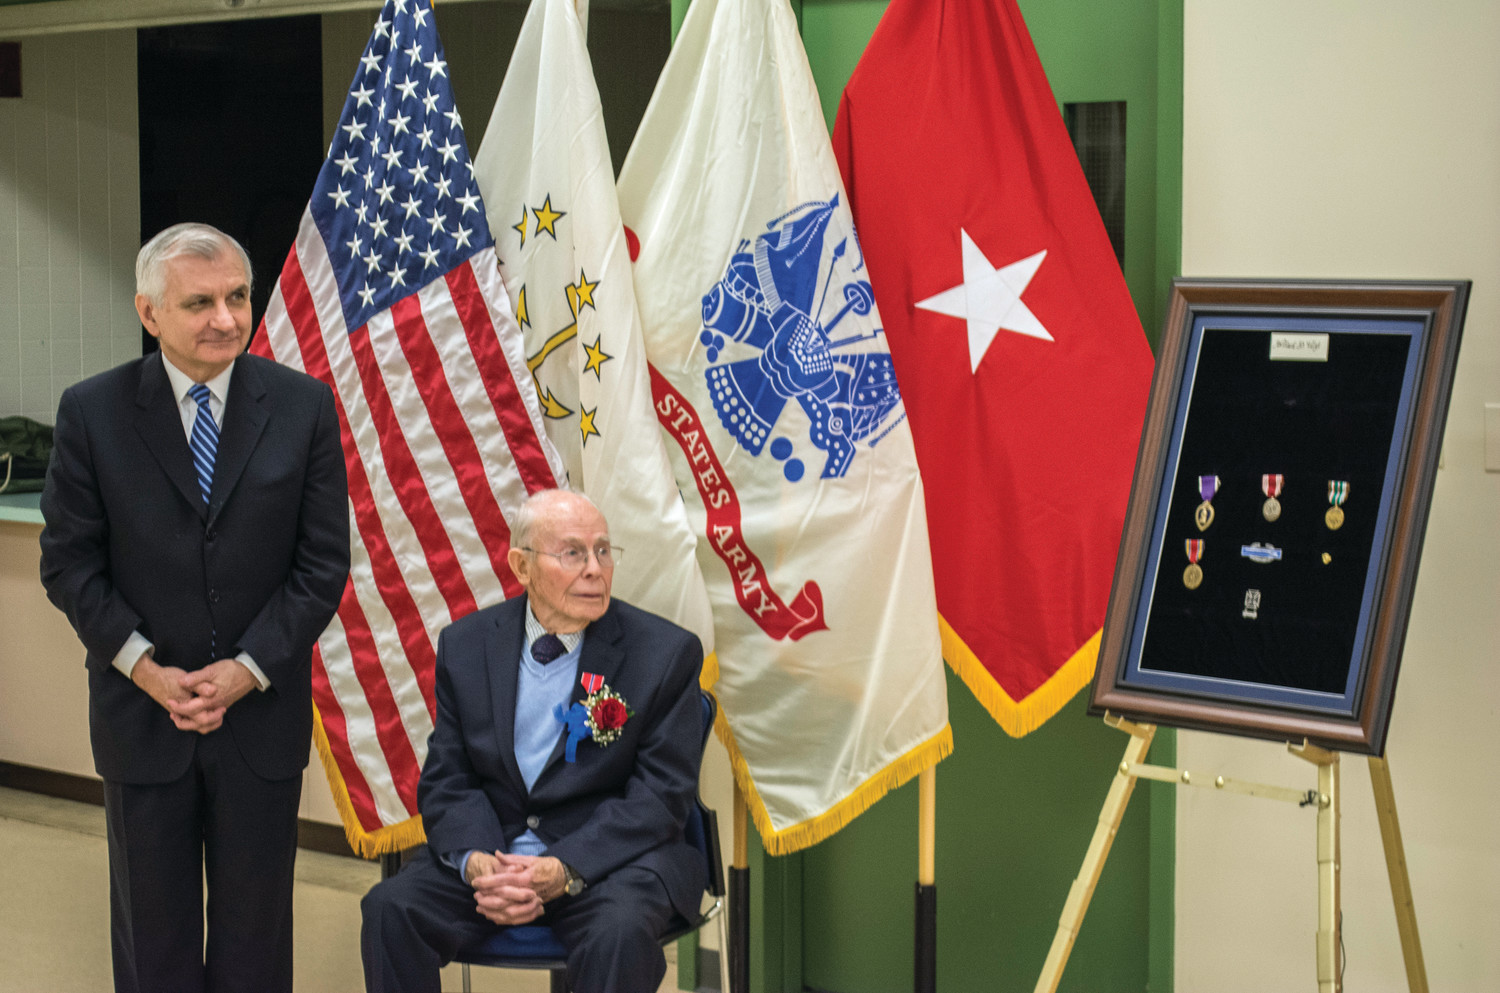 WWII MEDALS: Senator Reed presents Willard Voigt with Bronze Star, Purple Heart, and other medals.